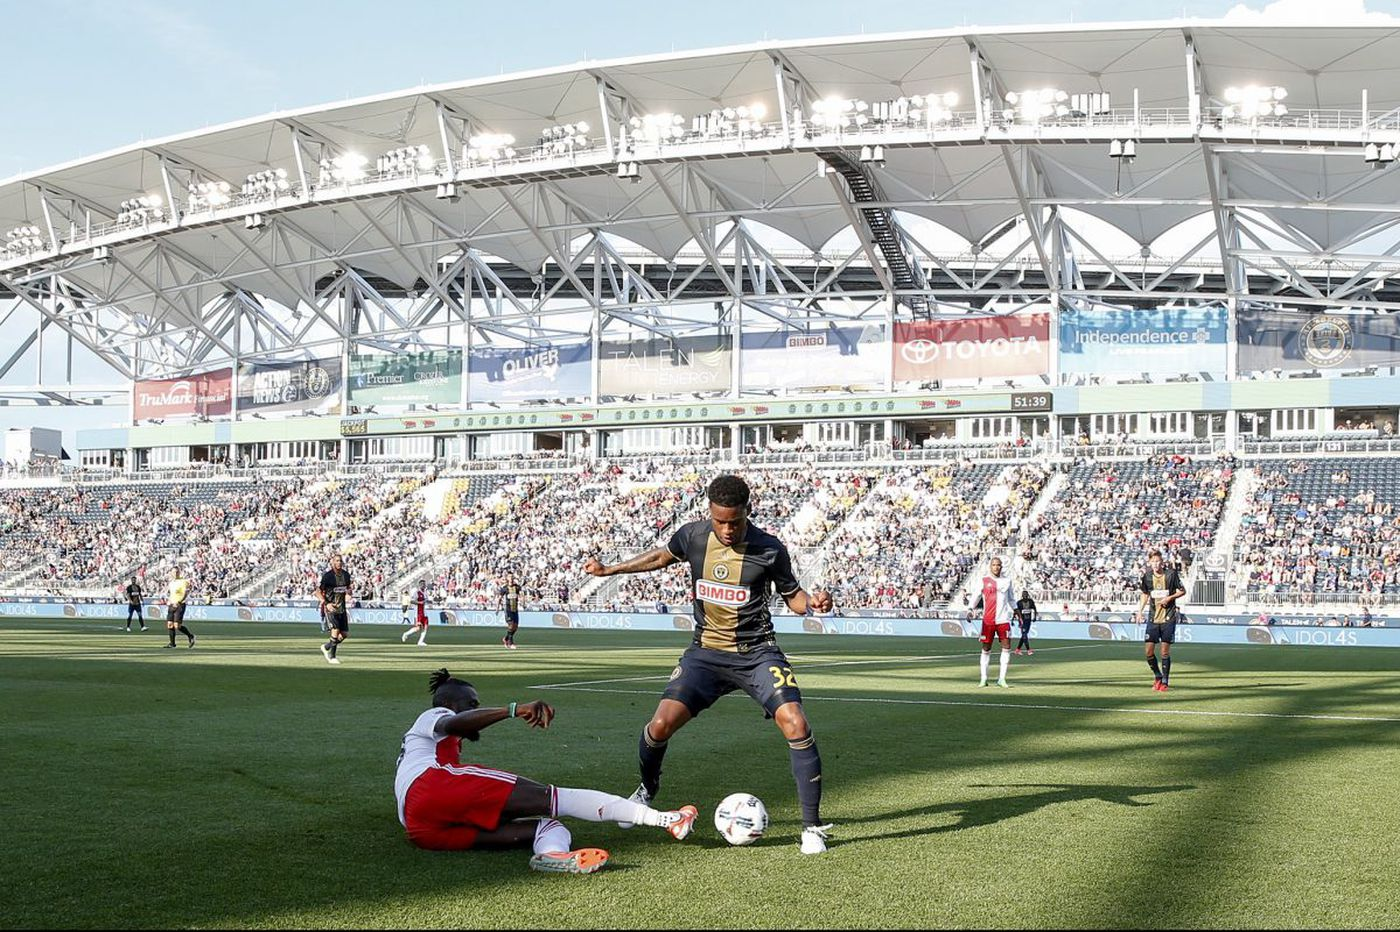 Union's handling of Giliano Wijnaldum, Keegan Rosenberry a lesson in player development